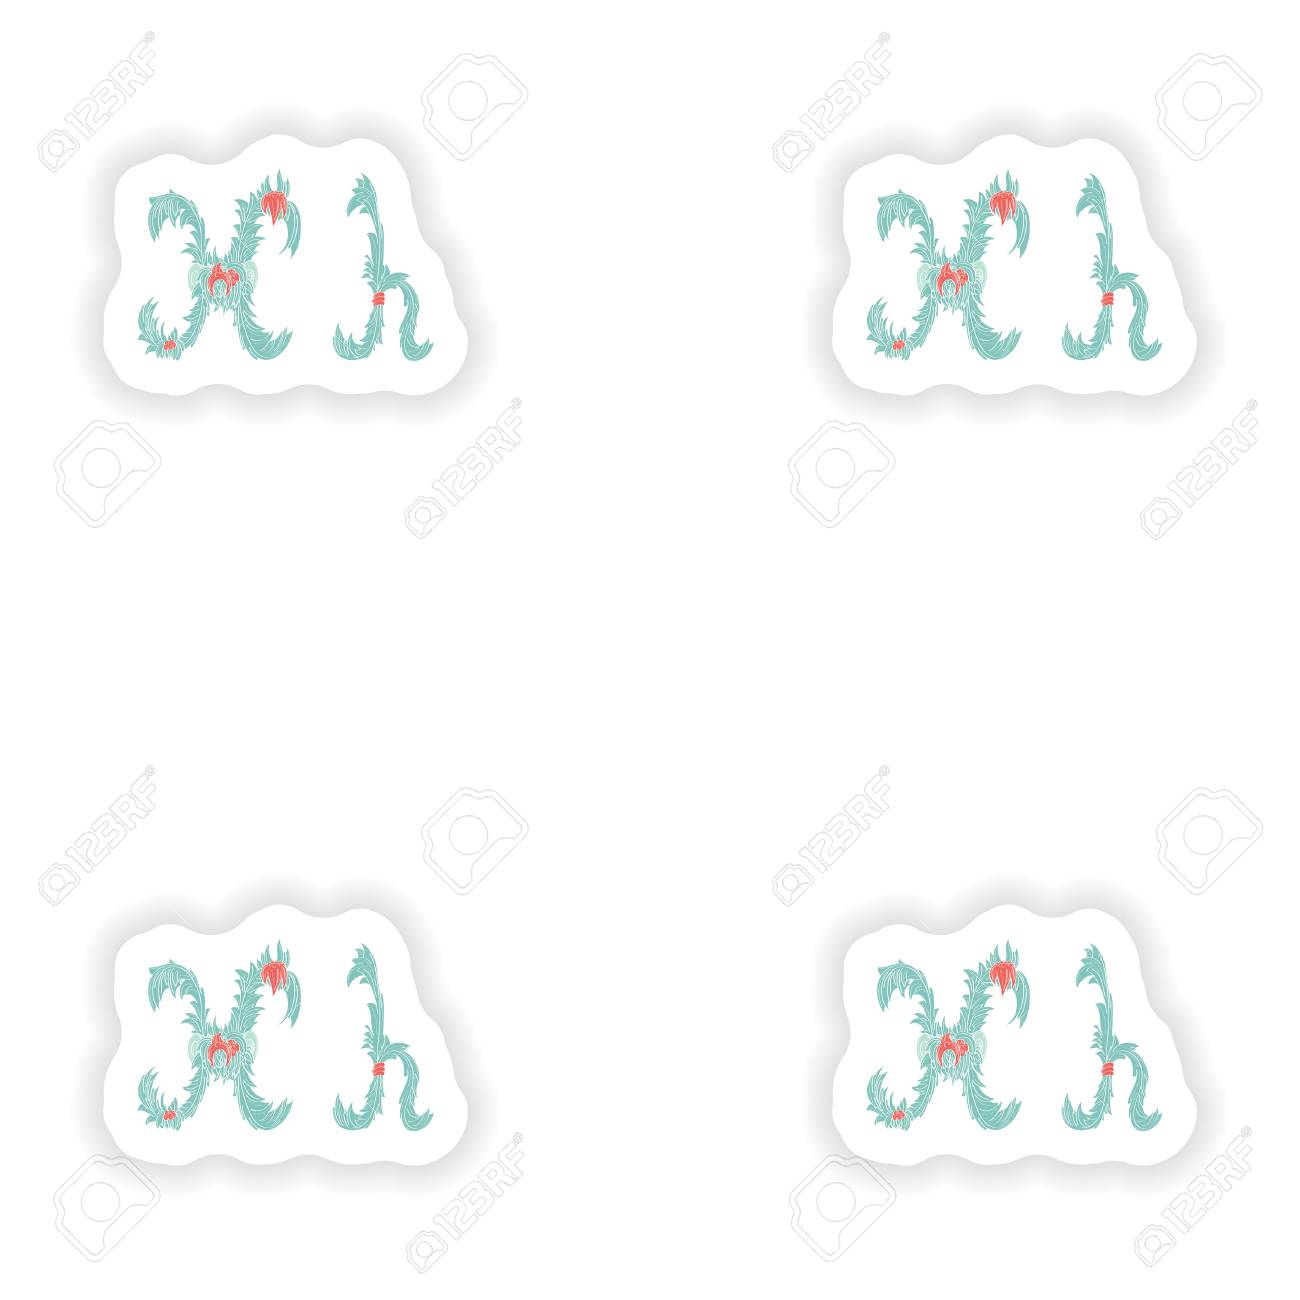 sticker abstract letter h icon in blue tropical style royalty free